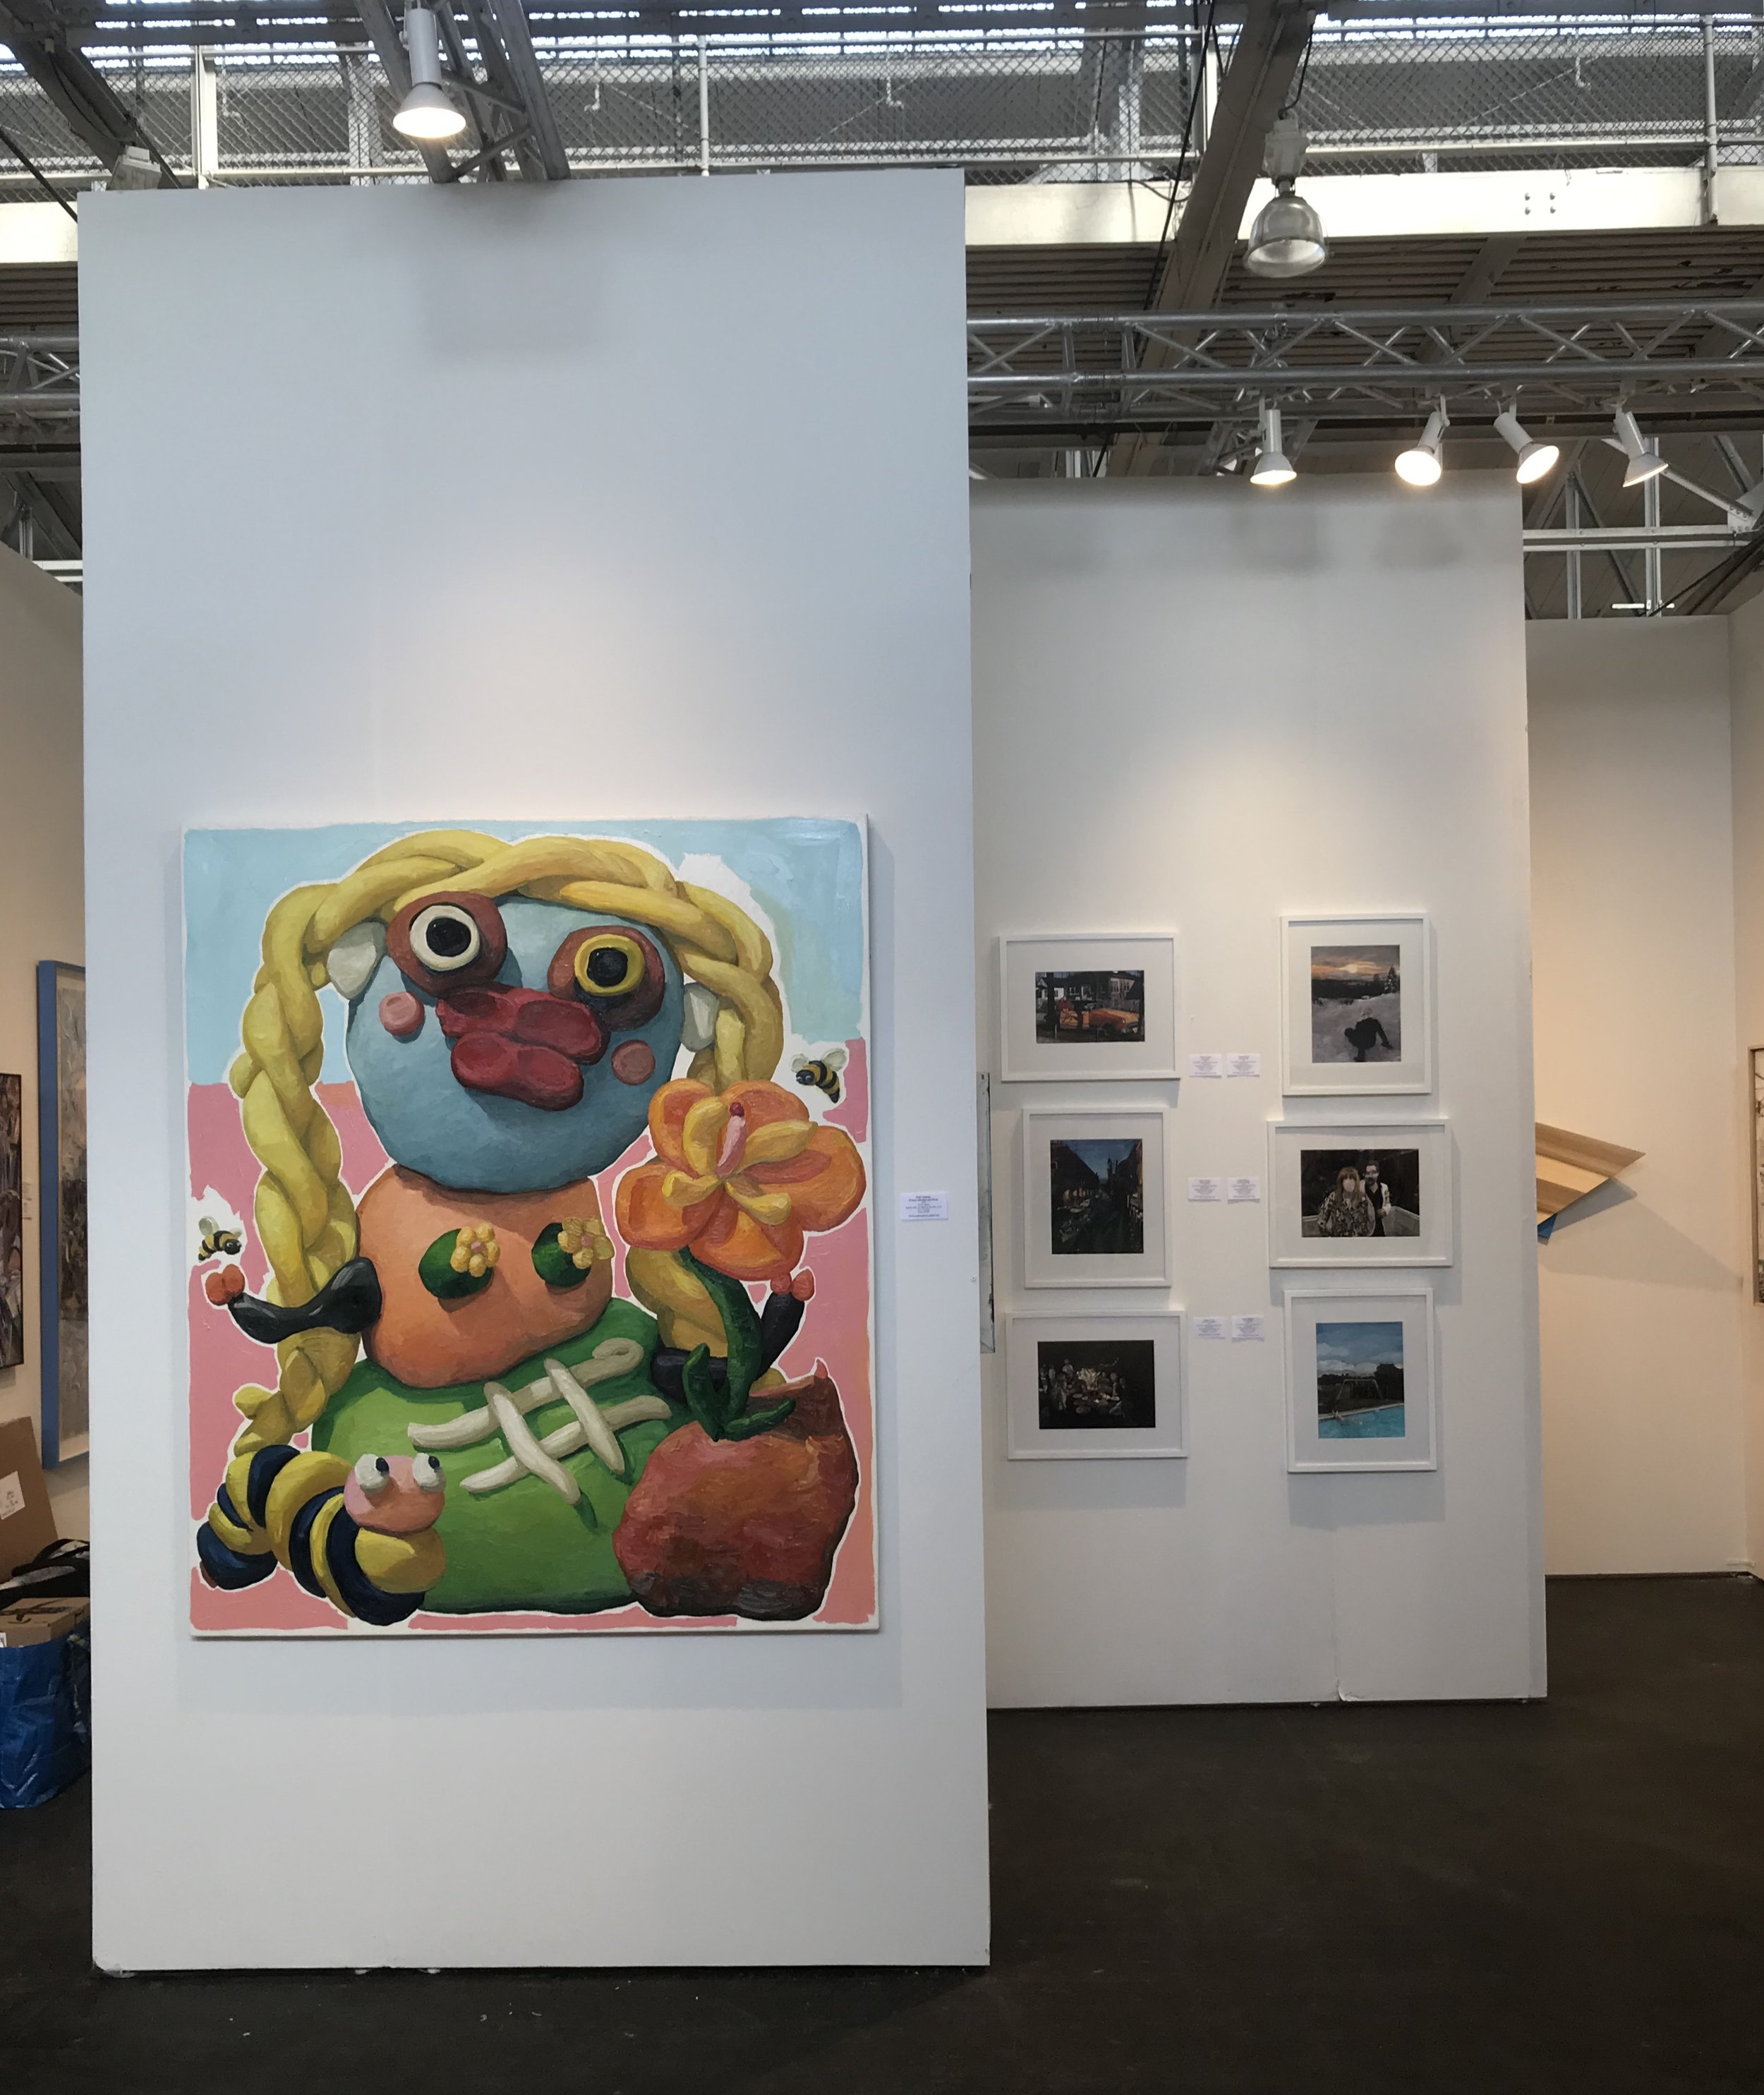 Art Market San Francisco - April 25 - 28, 2019